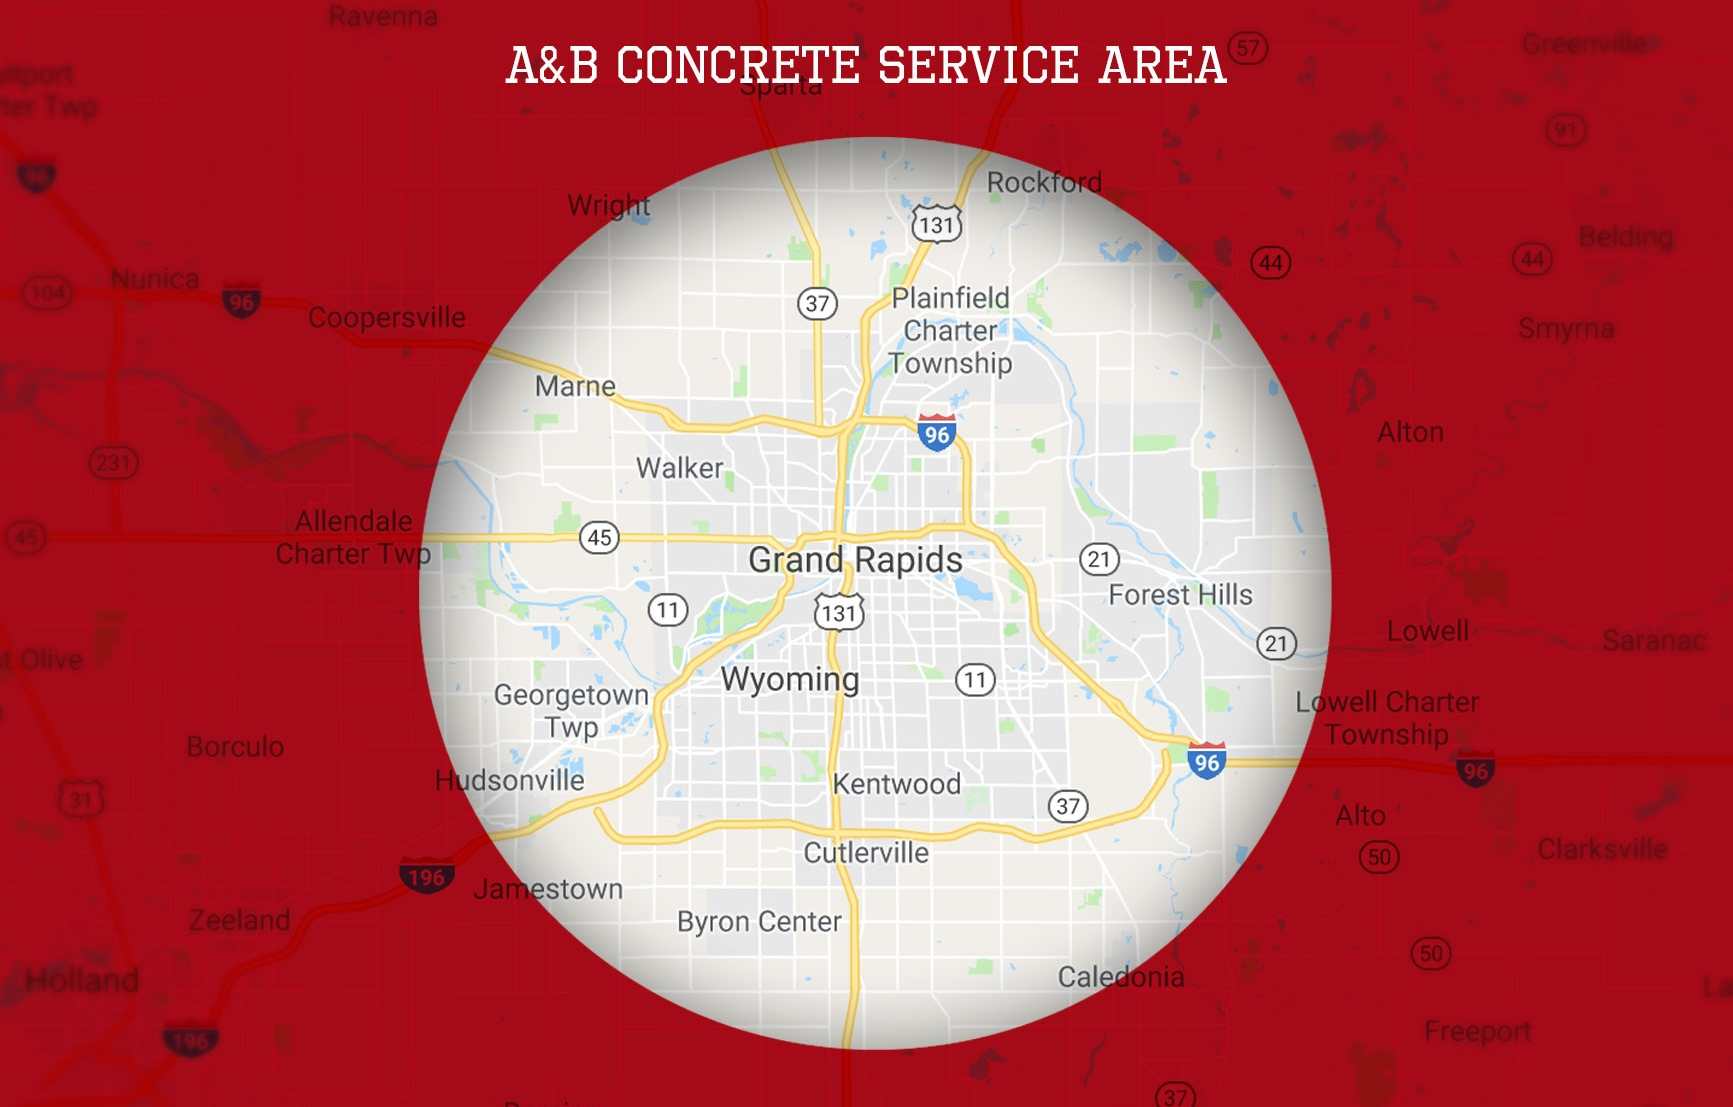 Service Area - Our service area is limited to the greater Grand Rapids area. If you are outside of the service area pictured, call us at 616-901-0900 to discuss further.